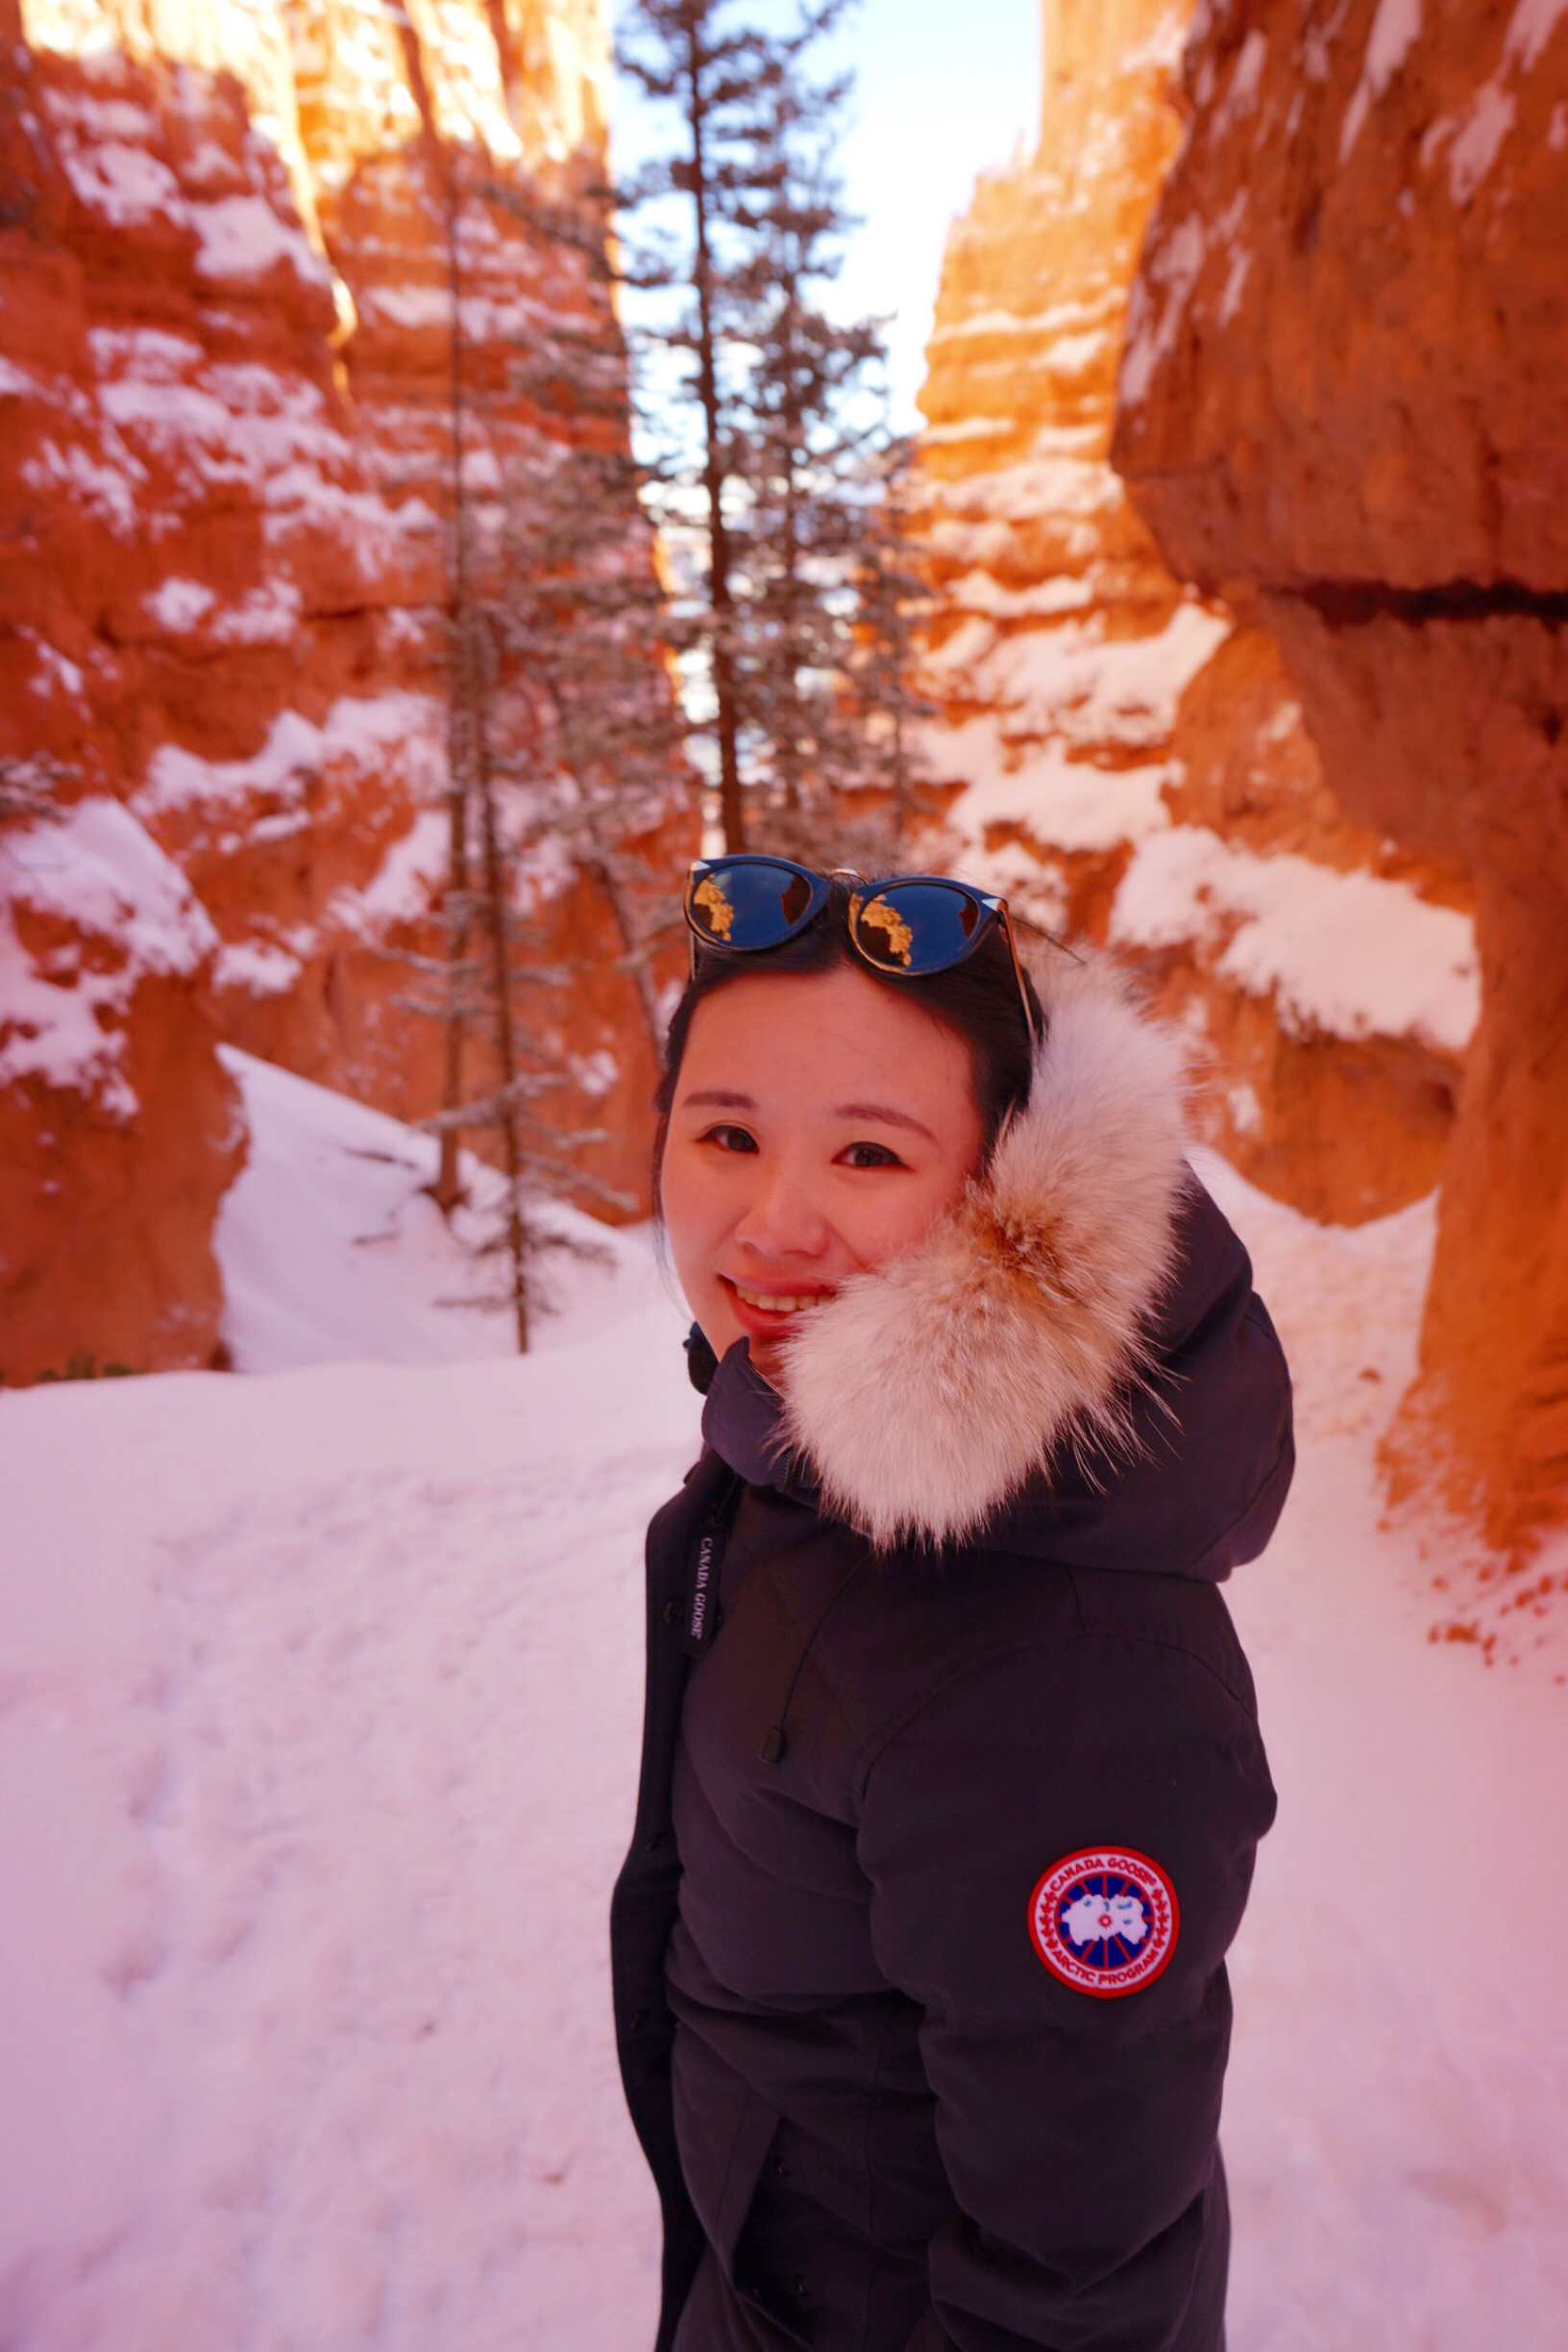 Bryce Canyon National Park, Utah. Jan 2019